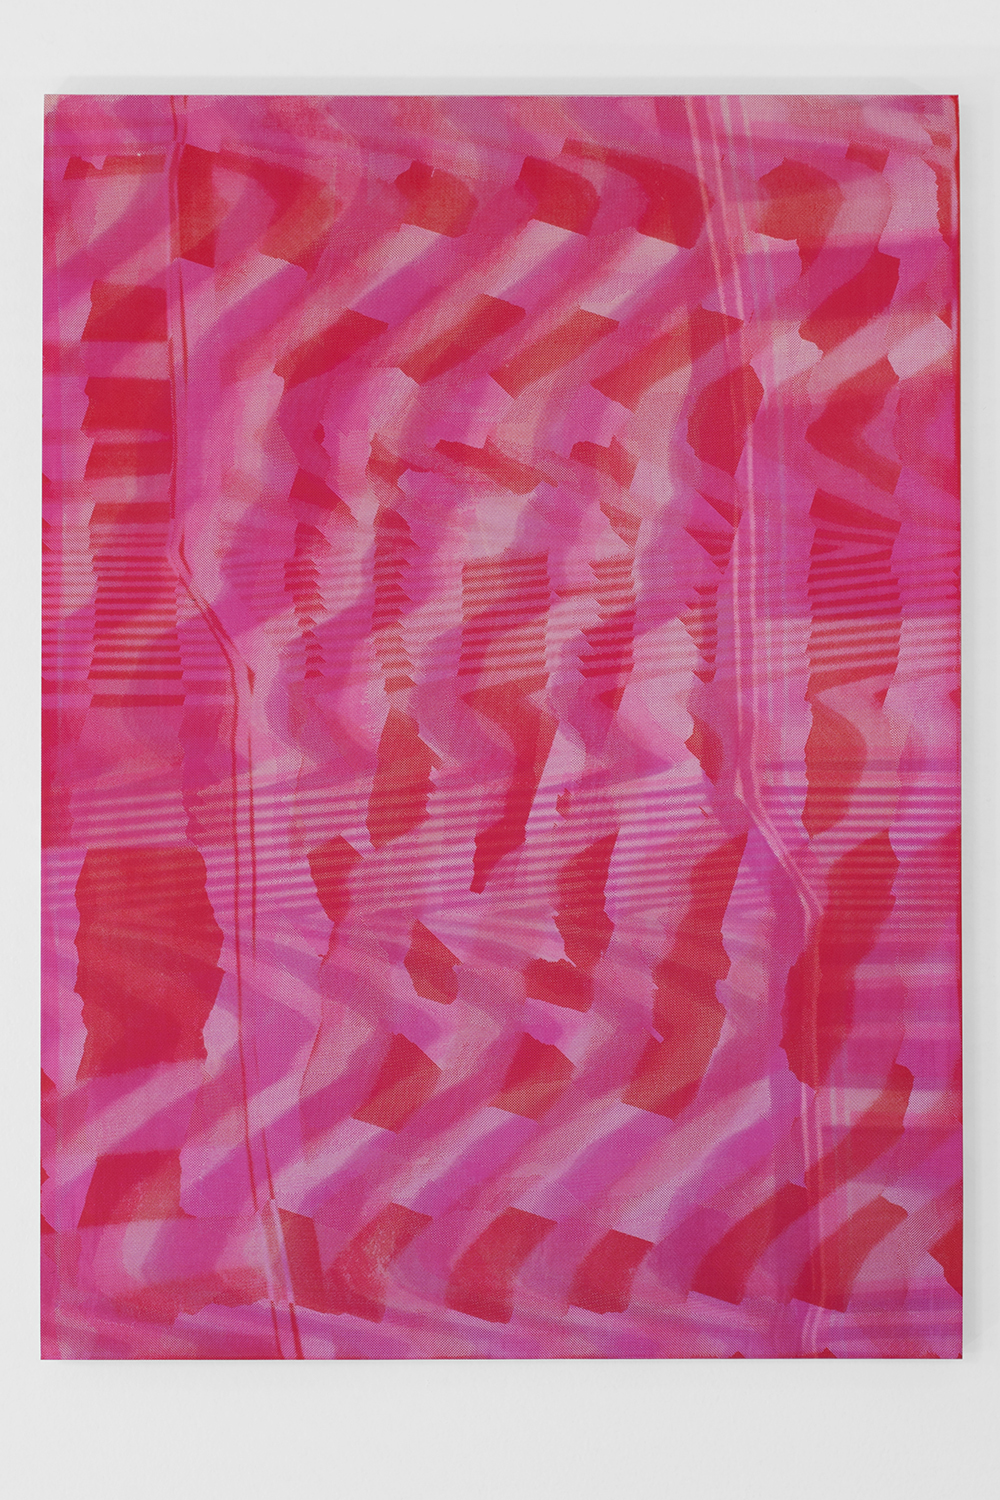 Graham McDougal and Elizabeth Corkery    the Modern Interior   at  Firstdraft   silkscreen ink and acrylic on panel  22 x 16.75 inches  2014